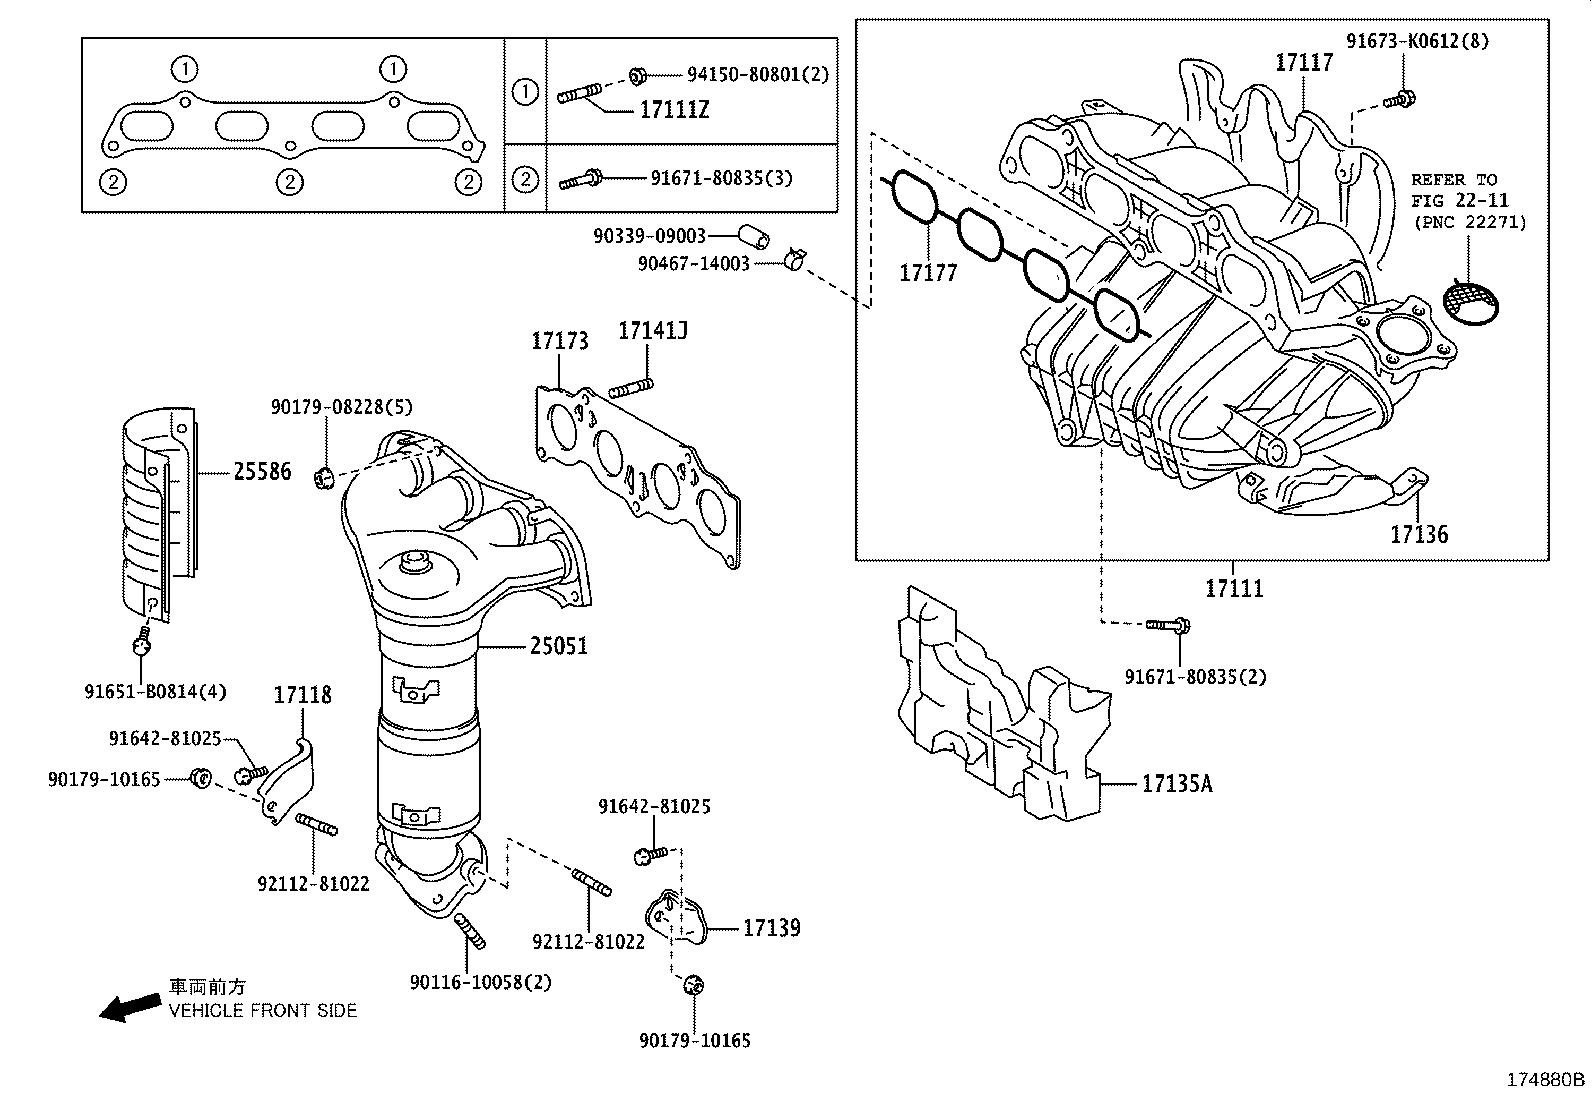 2007 Toyota Camry Converter sub-assembly, exhaust manifold